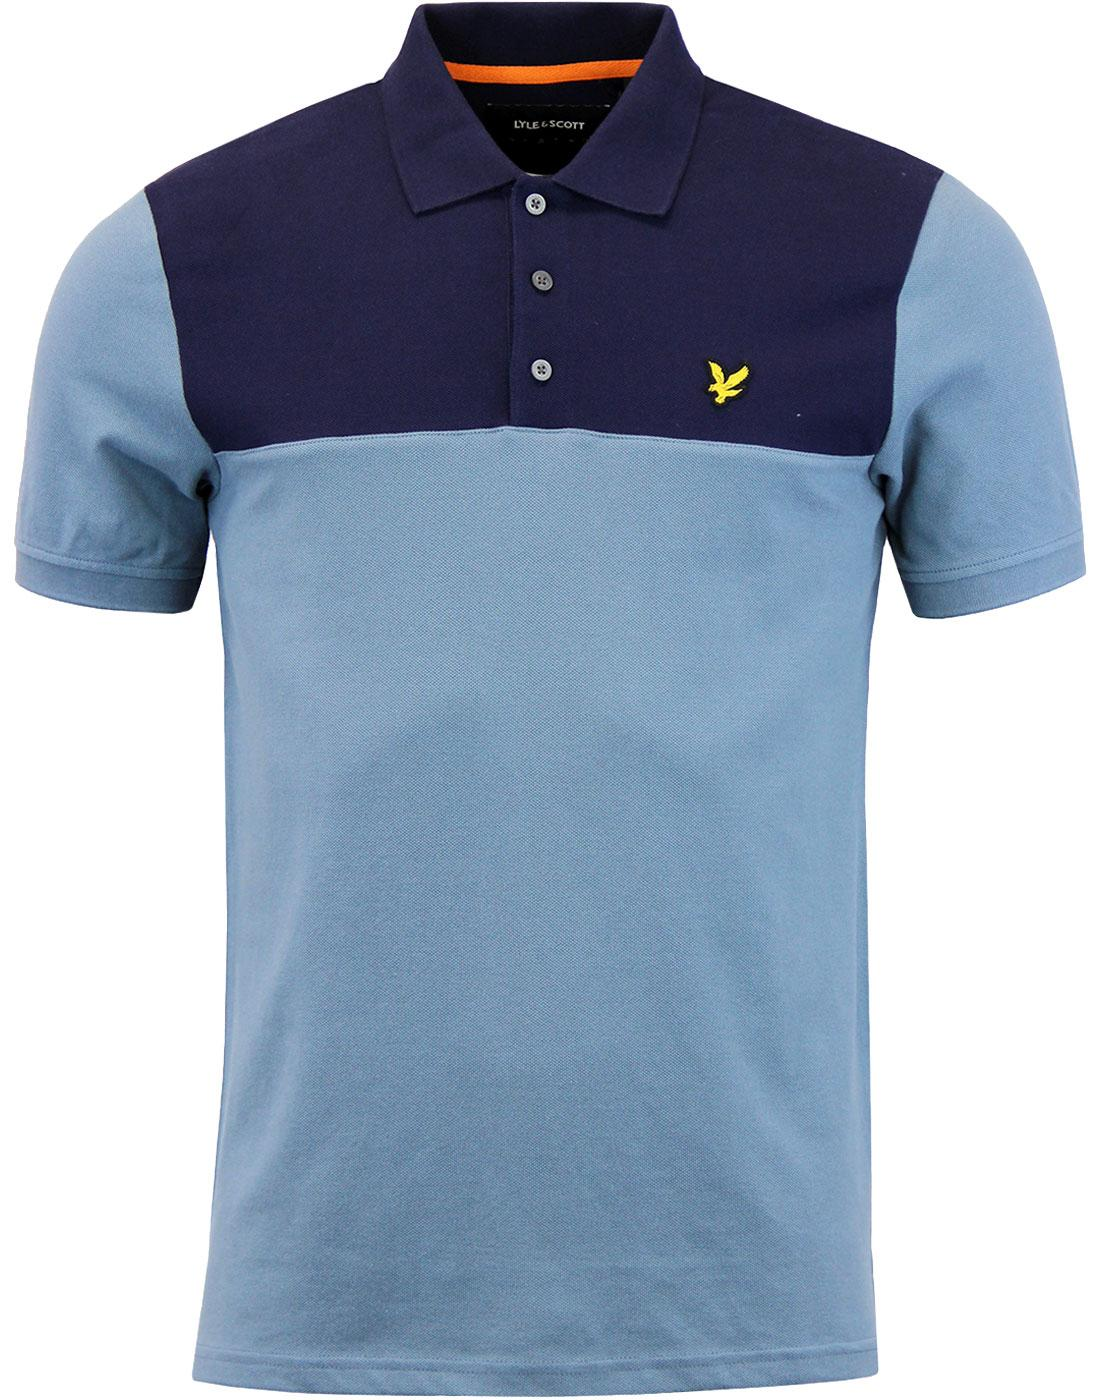 LYLE & SCOTT Retro Yoke Panel Pique Polo Shirt M